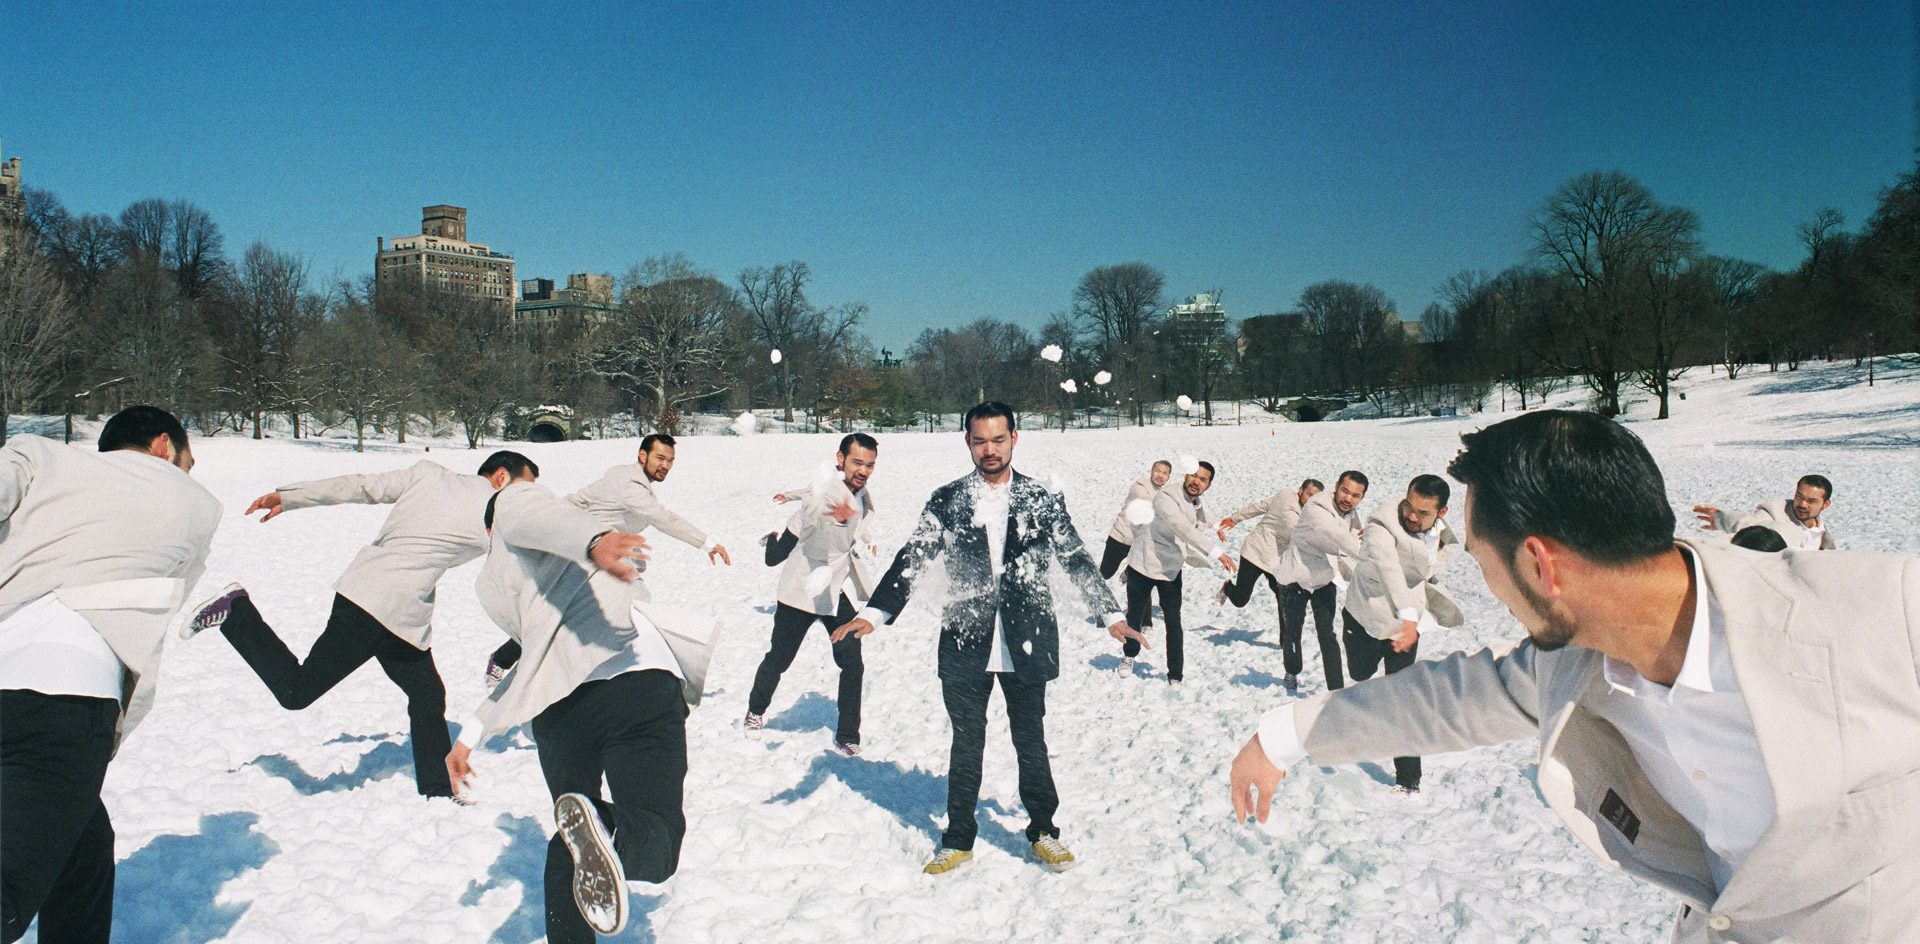 A group of asians in white suits throwing snowballs at the same asian in a dark suit getting hit.